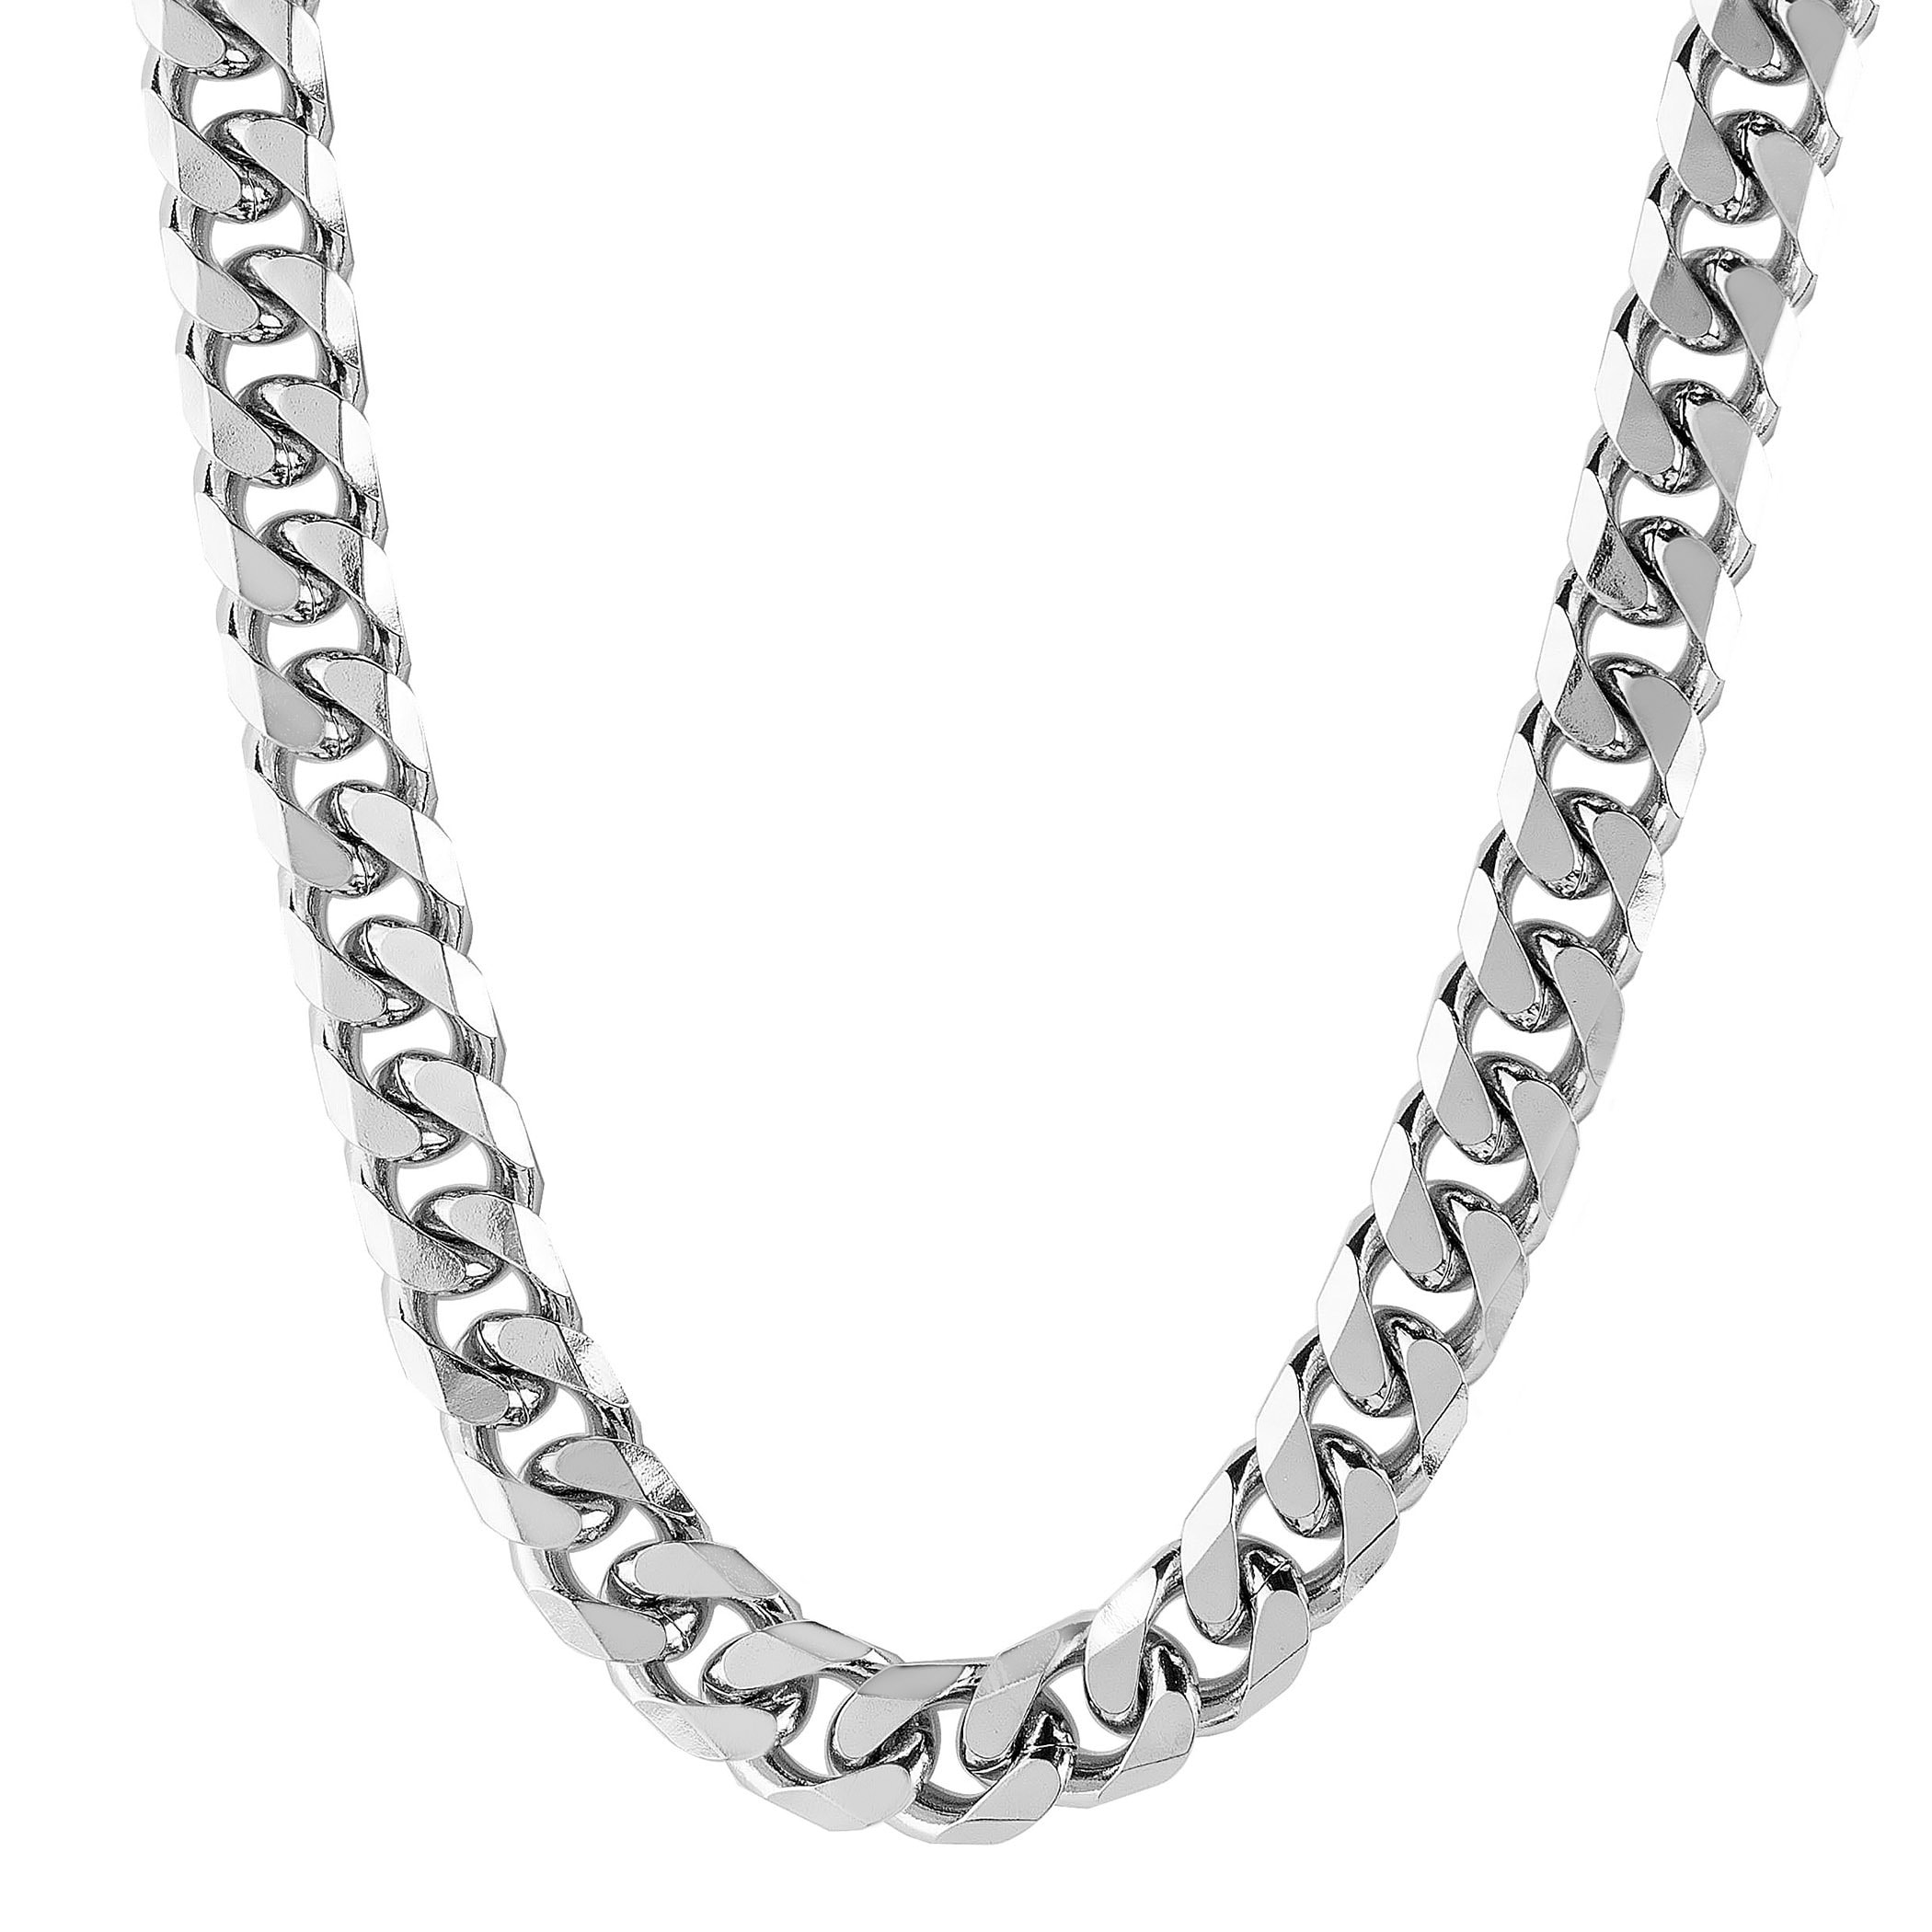 51c2c93333e Men's Stainless Steel Beveled Cuban Link Chain (6.4 mm) - Silver